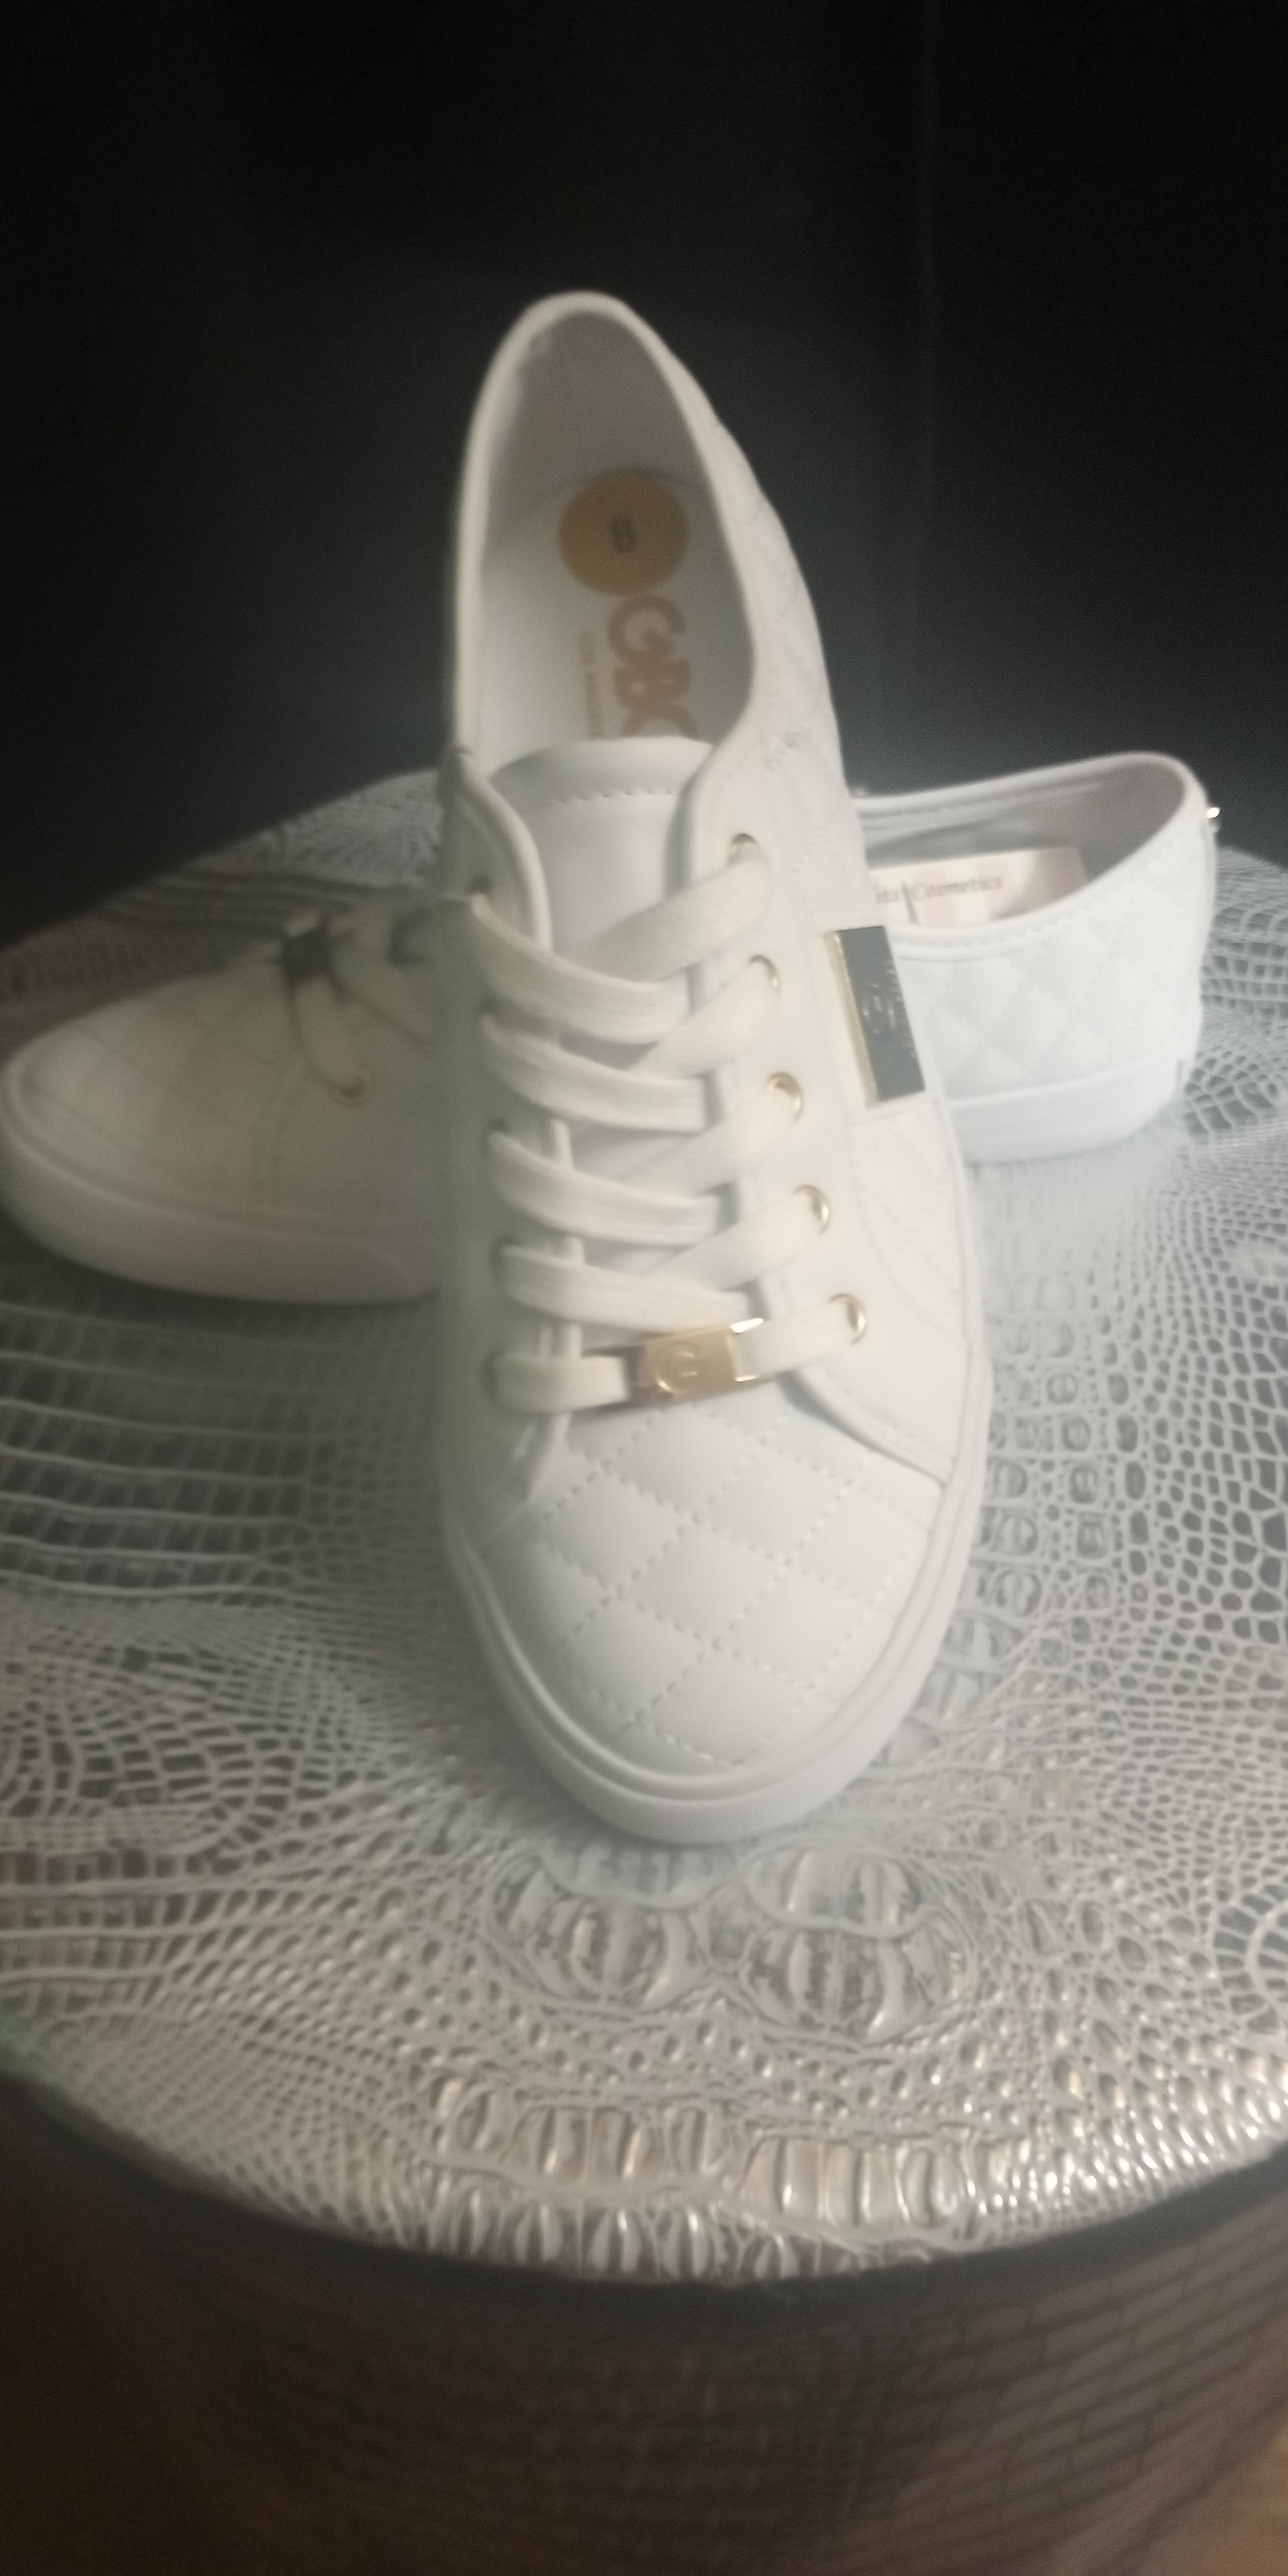 Ladies Quilted Guess Tennis Shoes